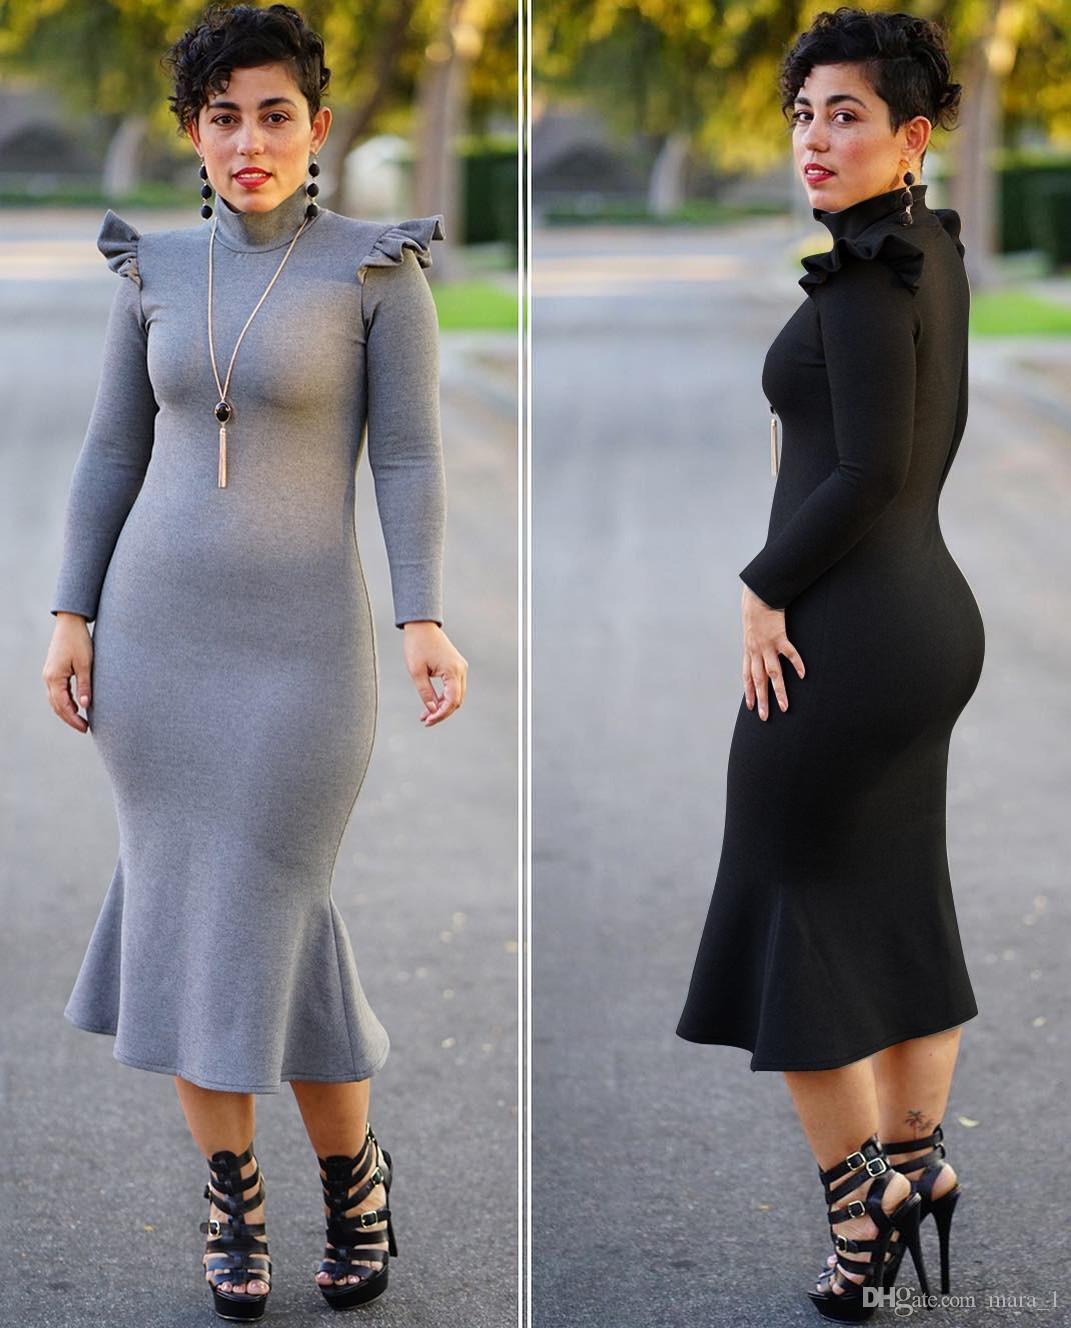 a031b192c9 Women Mermaid Midi Dress Long Sleeve Designer Trumpet Skirts Stand Collar  Ruffle Dresses Breif Casual Dress Fall Clothes Plus Size M 3XL Pageant  Dress Dress ...